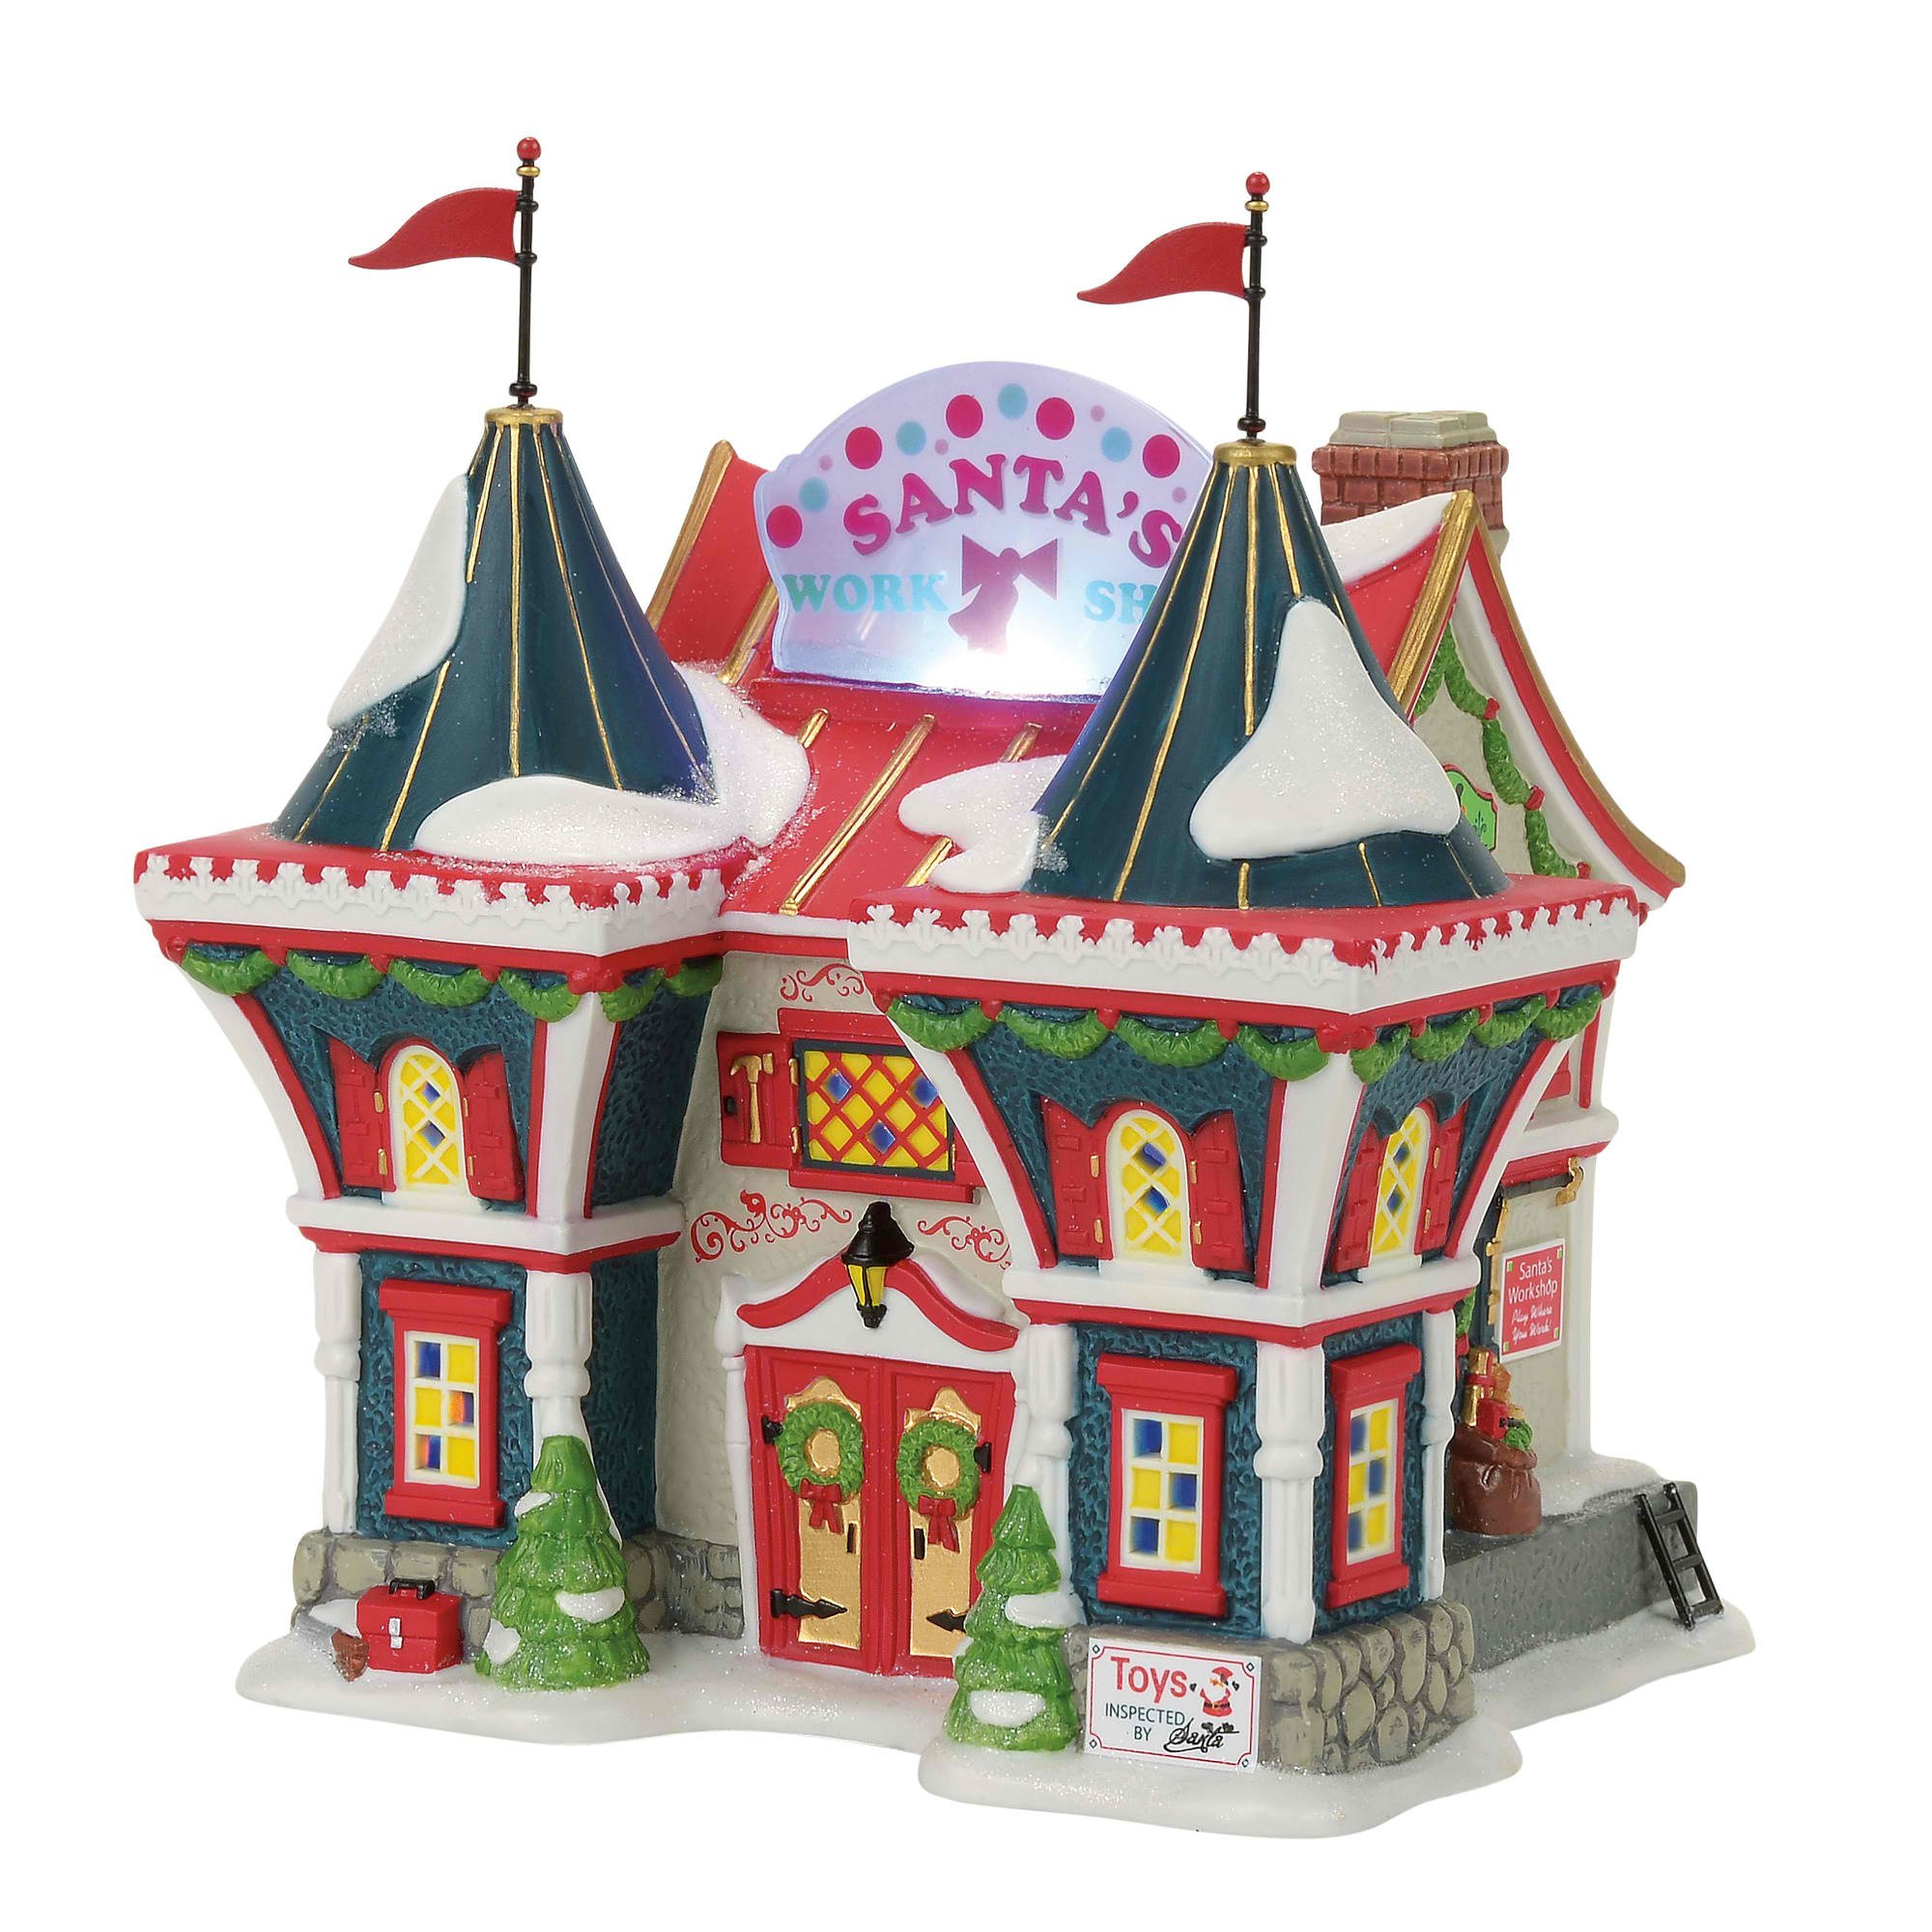 Department 56 North Pole Series Santa's Workshop Village Lit Building, Multicolor by Department 56